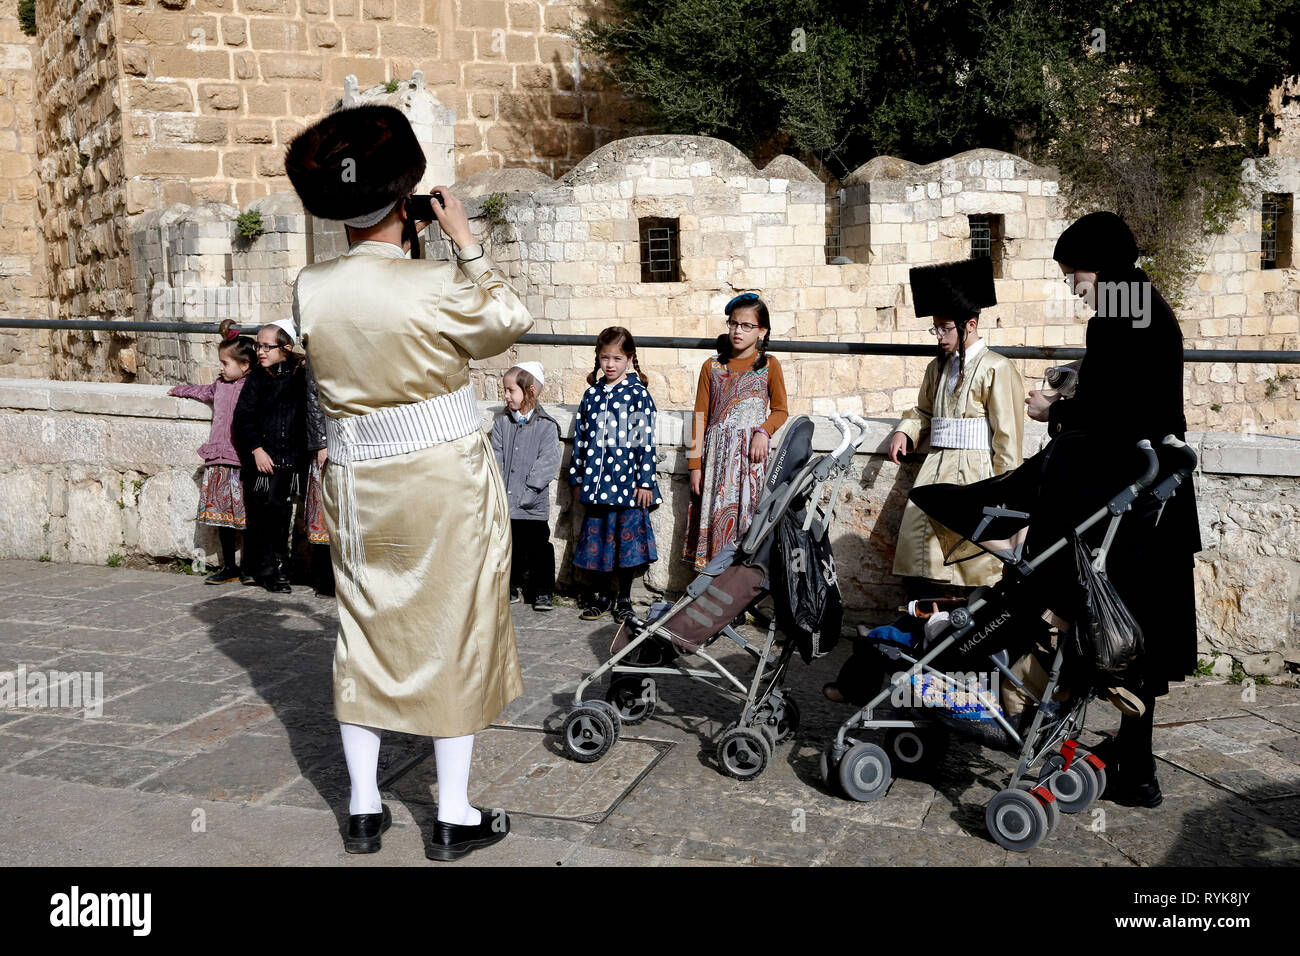 Orthodox Jew taking a family picture in the old city of Jerusalem, Israel. - Stock Image